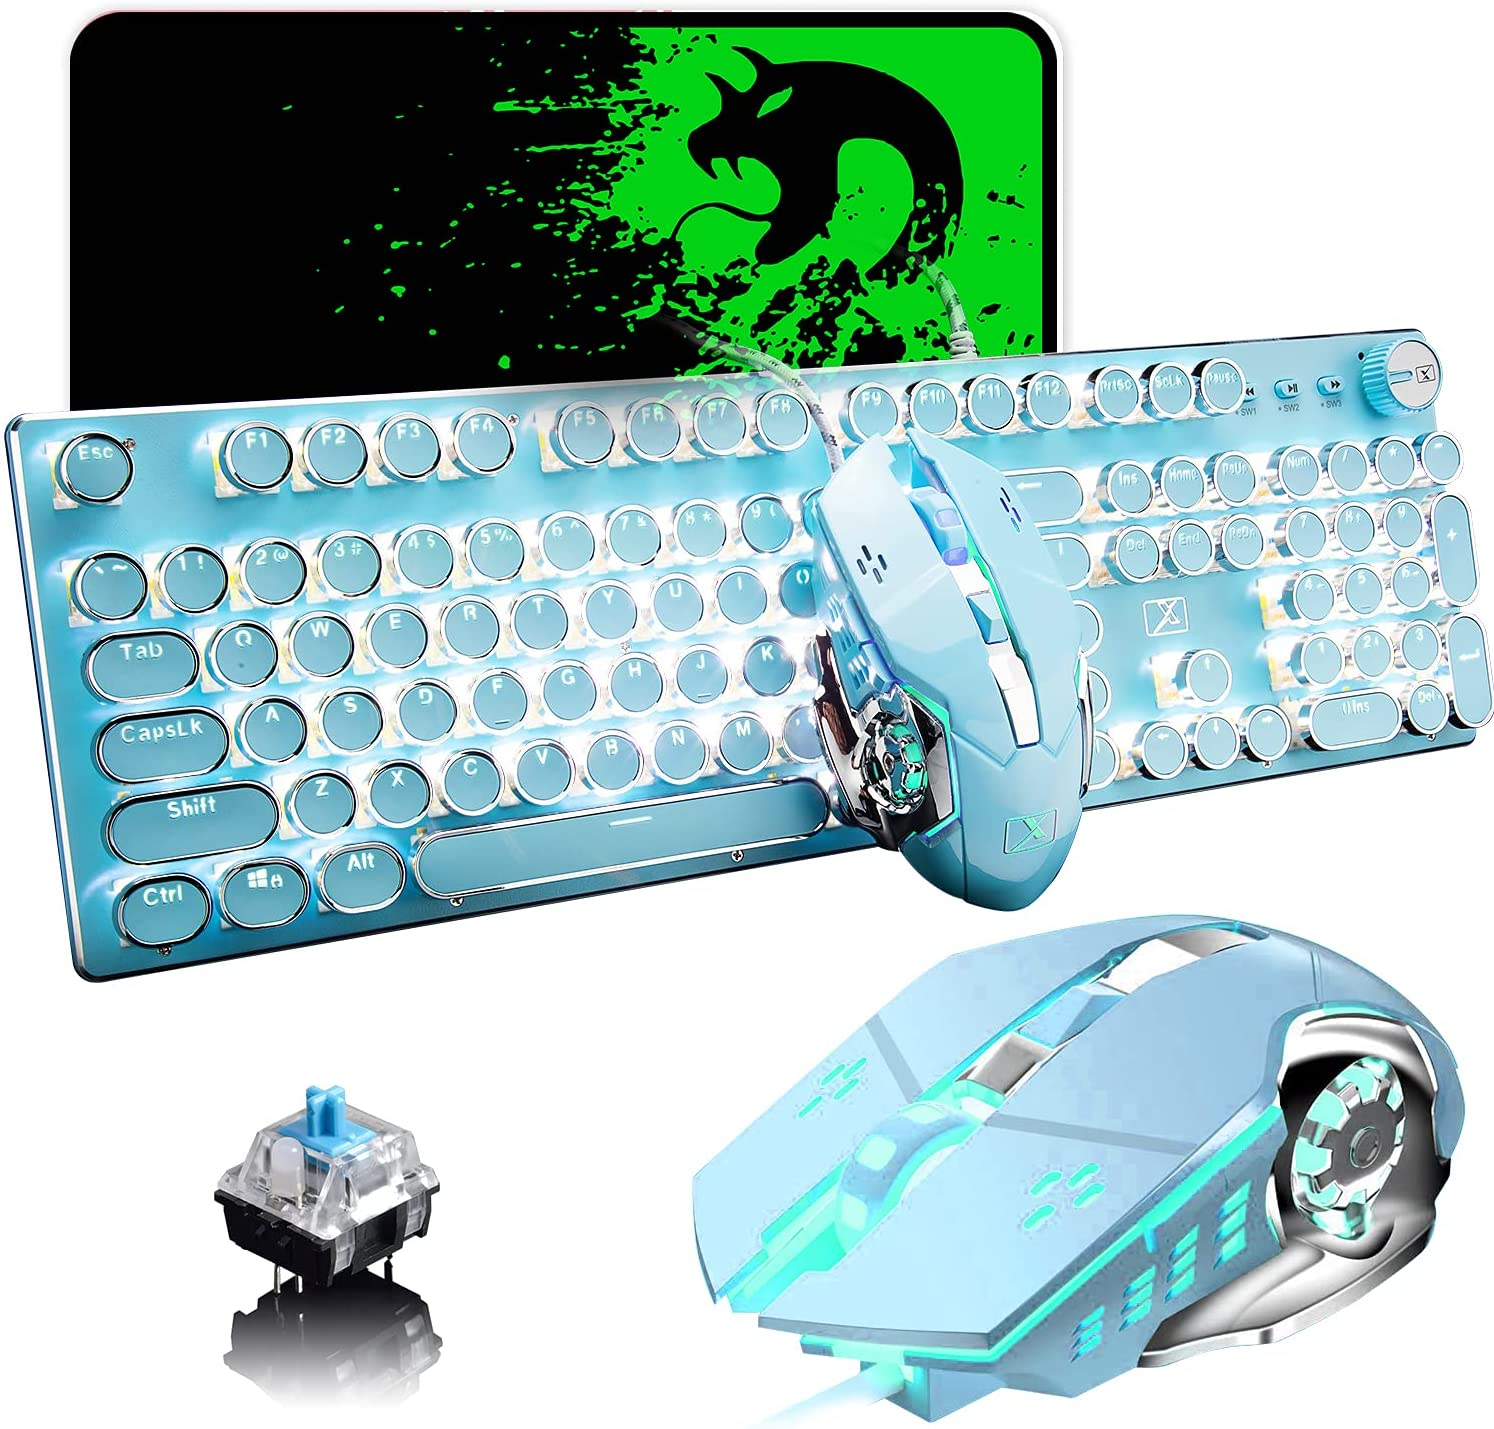 Gaming Keyboard and Mouse,Retro Steampunk Vintage Typewriter-Style Mechanical Keyboard with White LED Backlit,104-Key Anti-Ghosting Blue Switch Wired USB Metal Panel Round Keycaps(Blue)